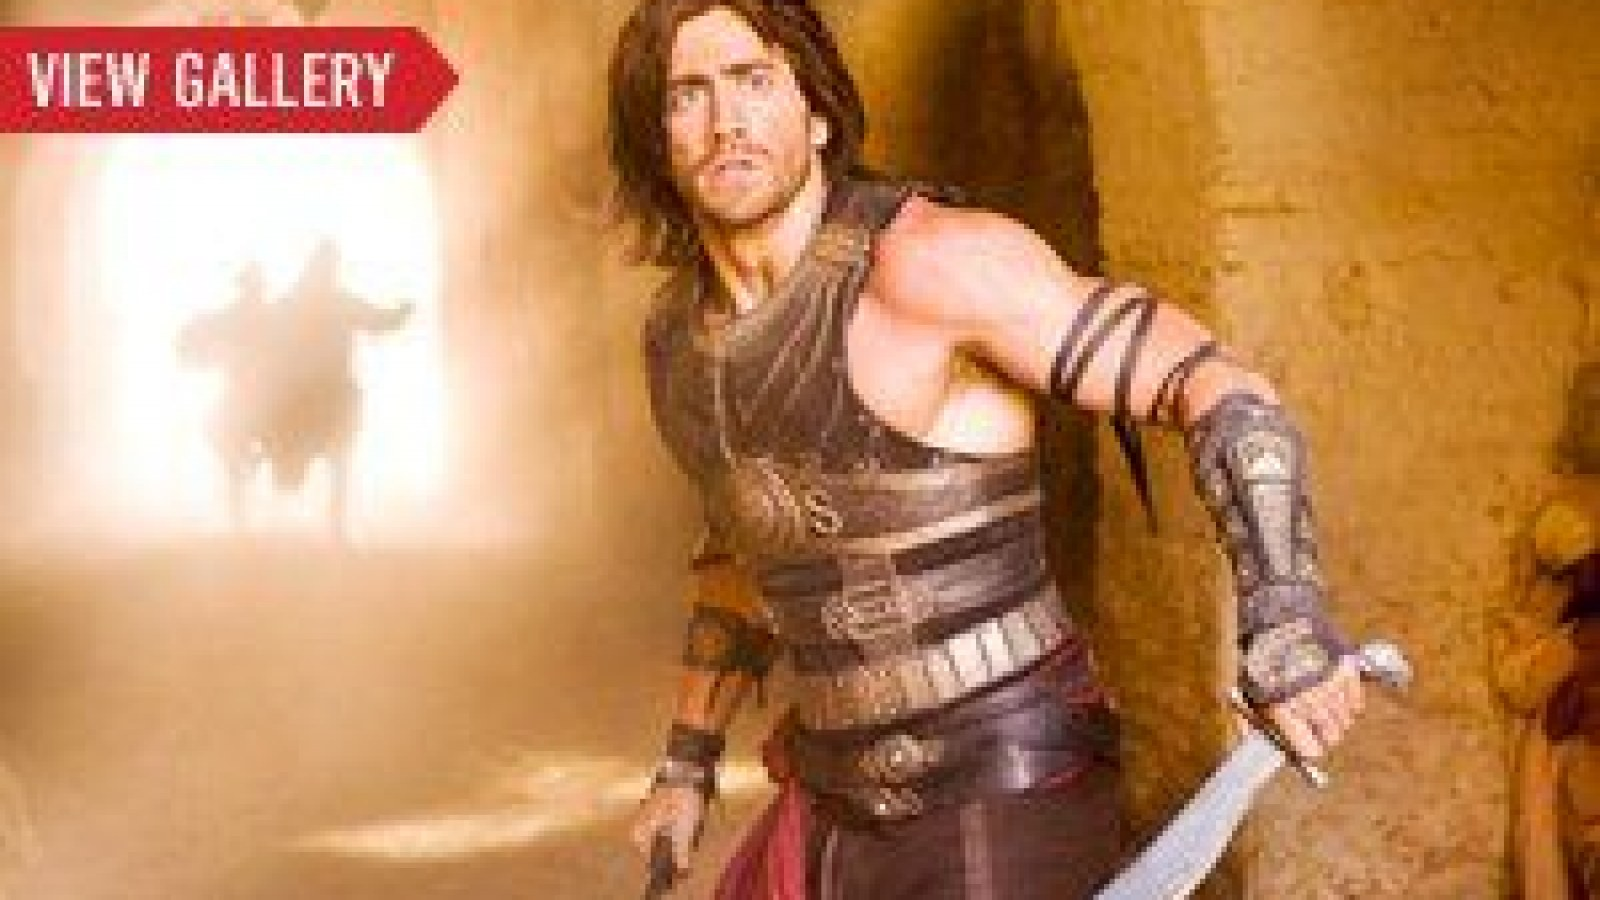 Satc2 Prince Of Persia Bomb At The Box Office